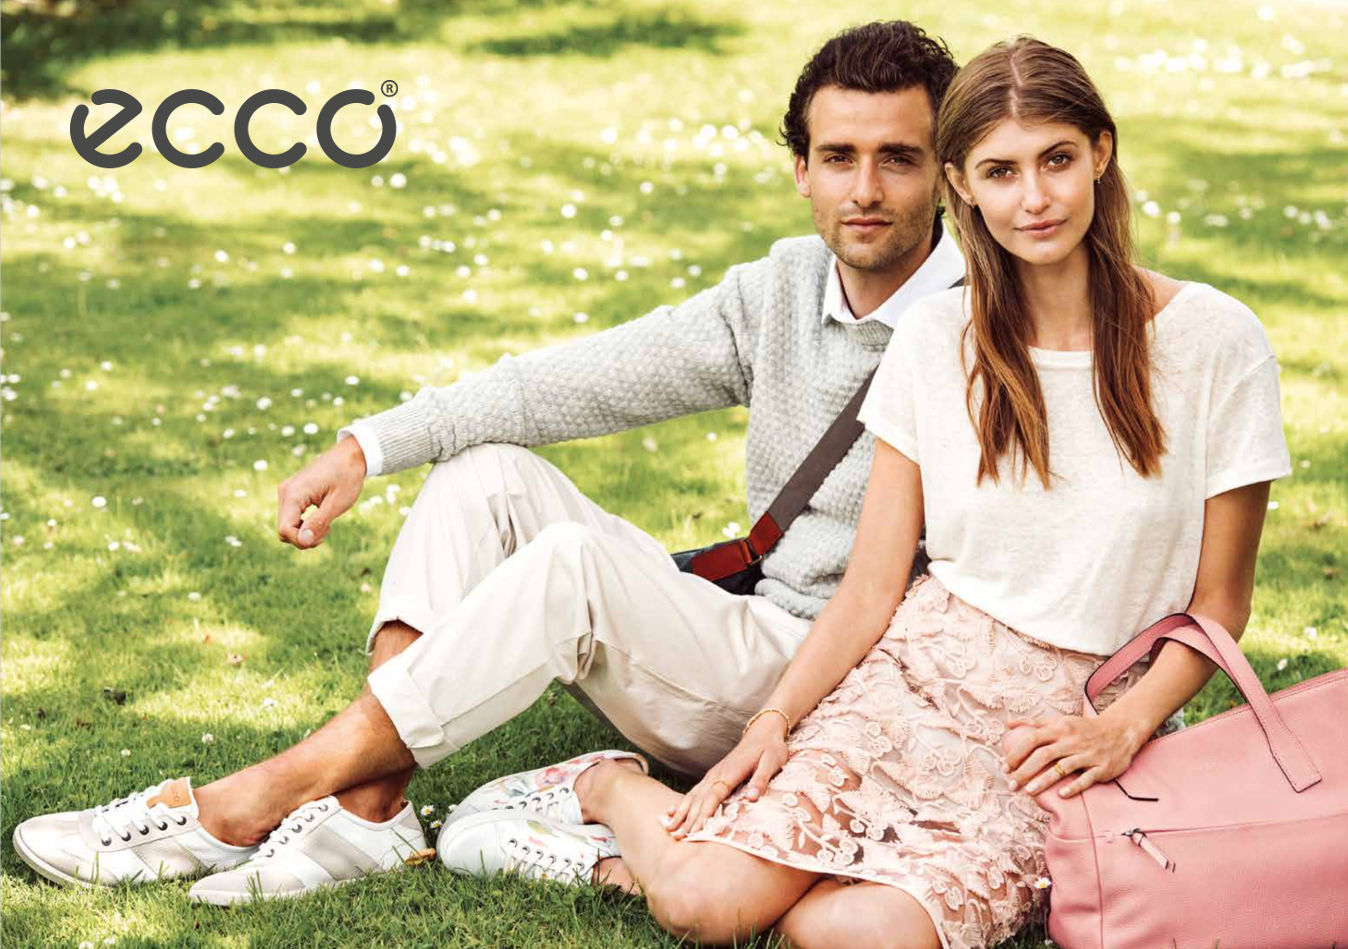 Ecco Shoes and Sandals